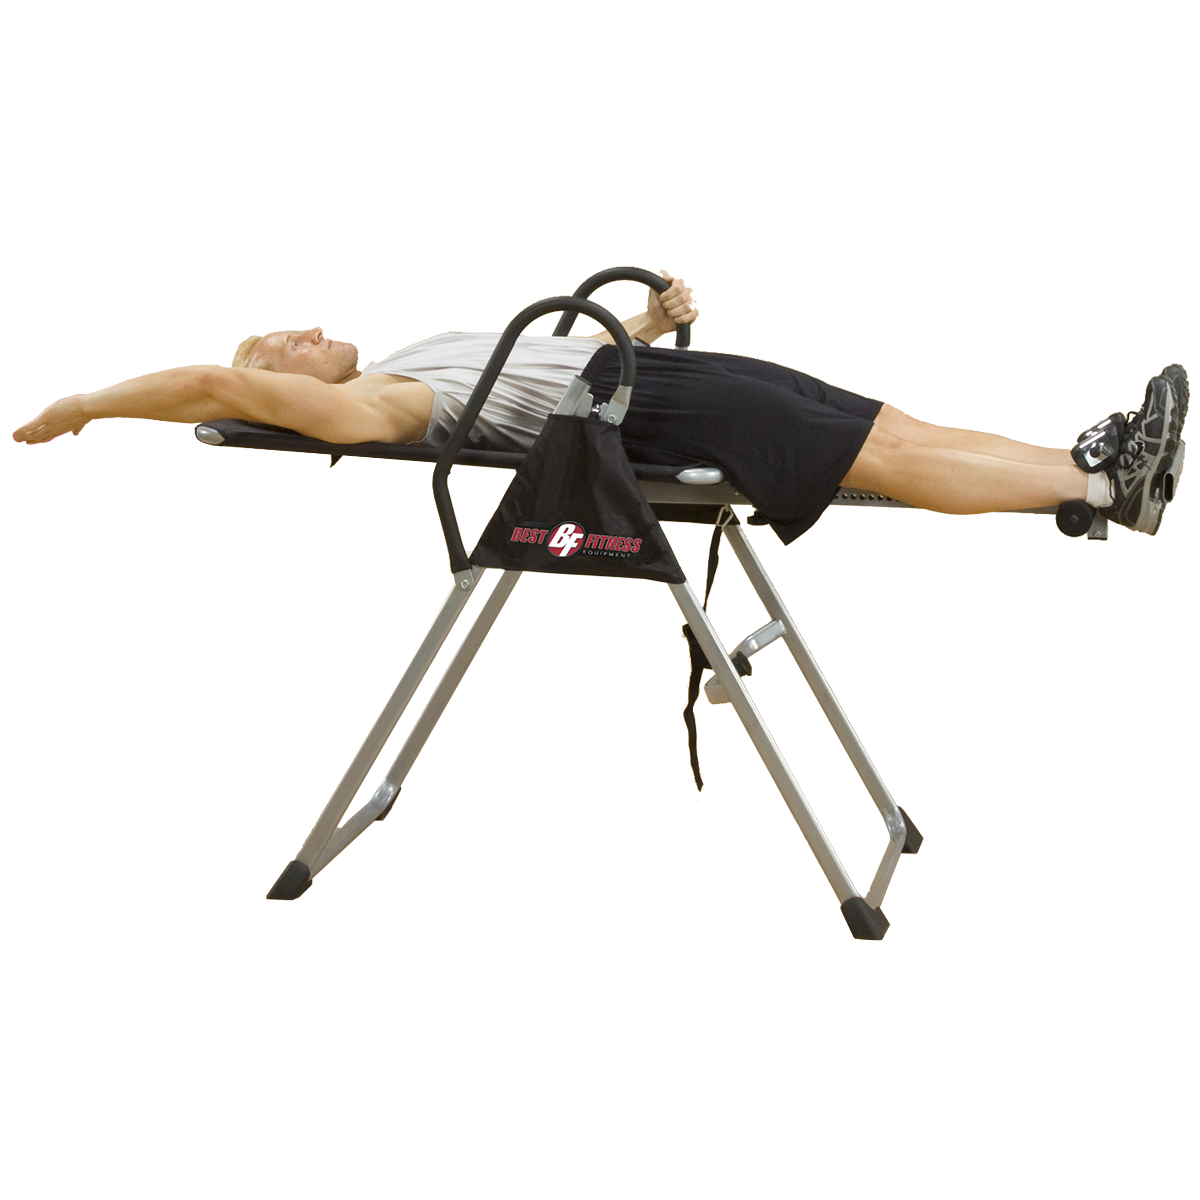 Best inversion tables 5 best inversion table reviews for Table inversion